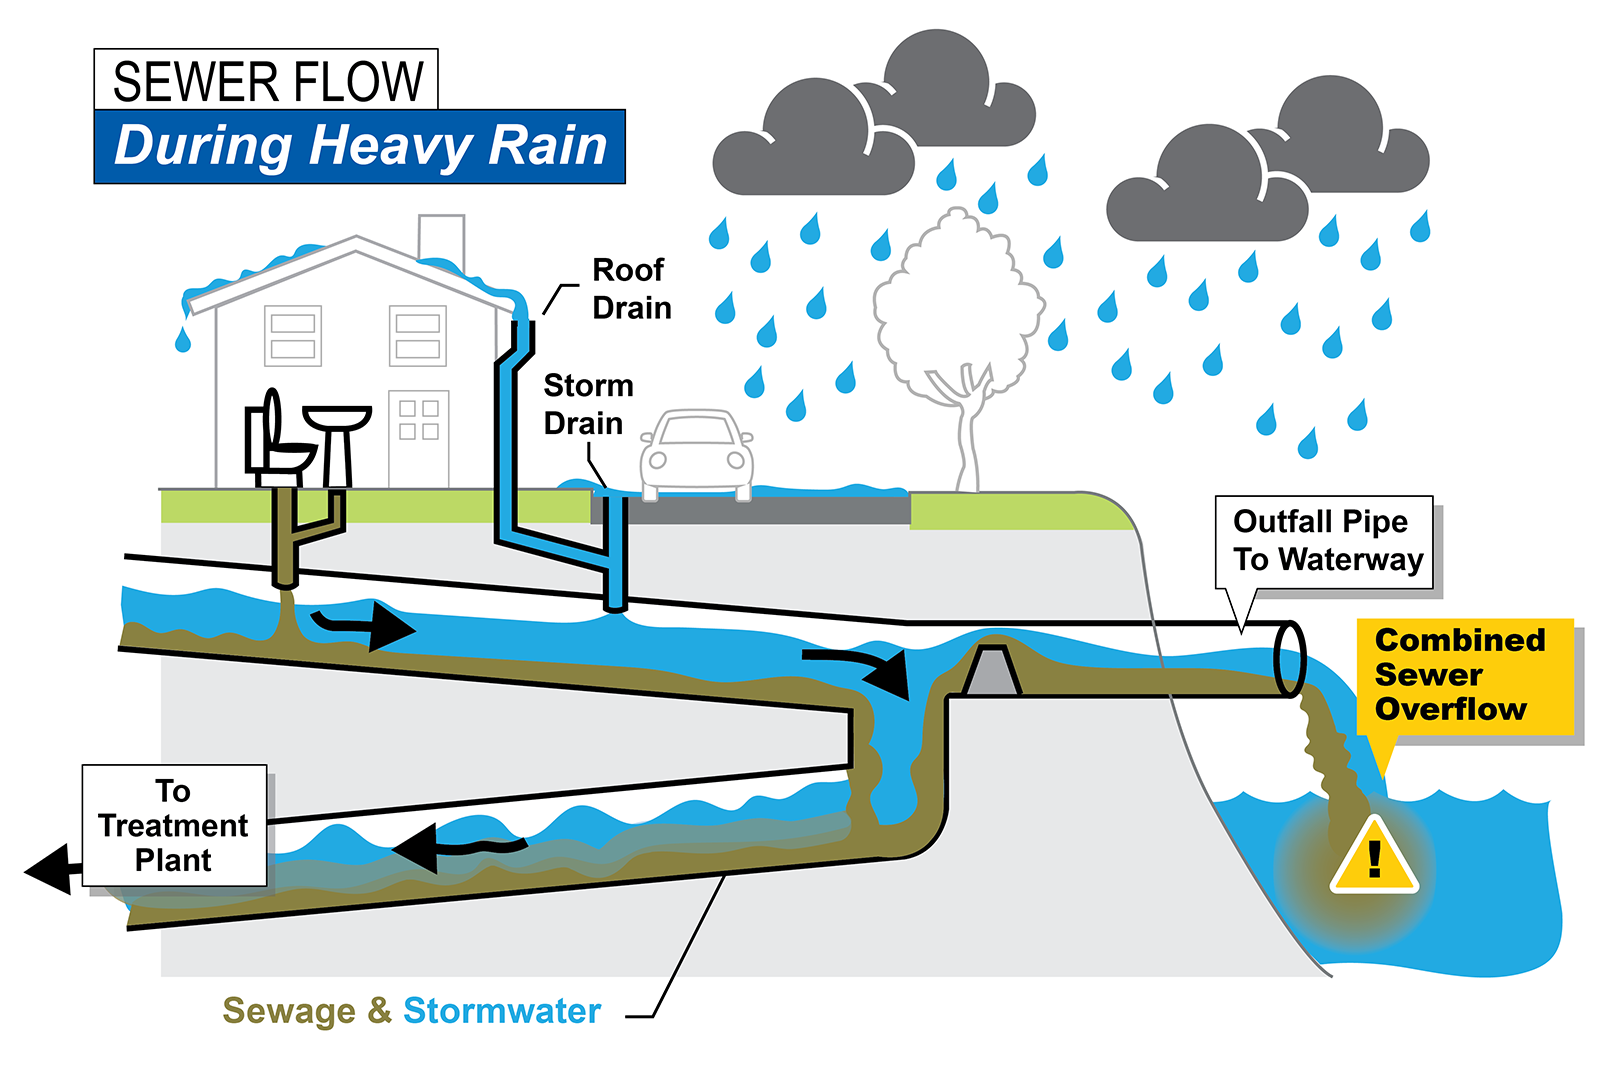 During heavy rain, sewage and stormwater can overflow into a nearby body of water.